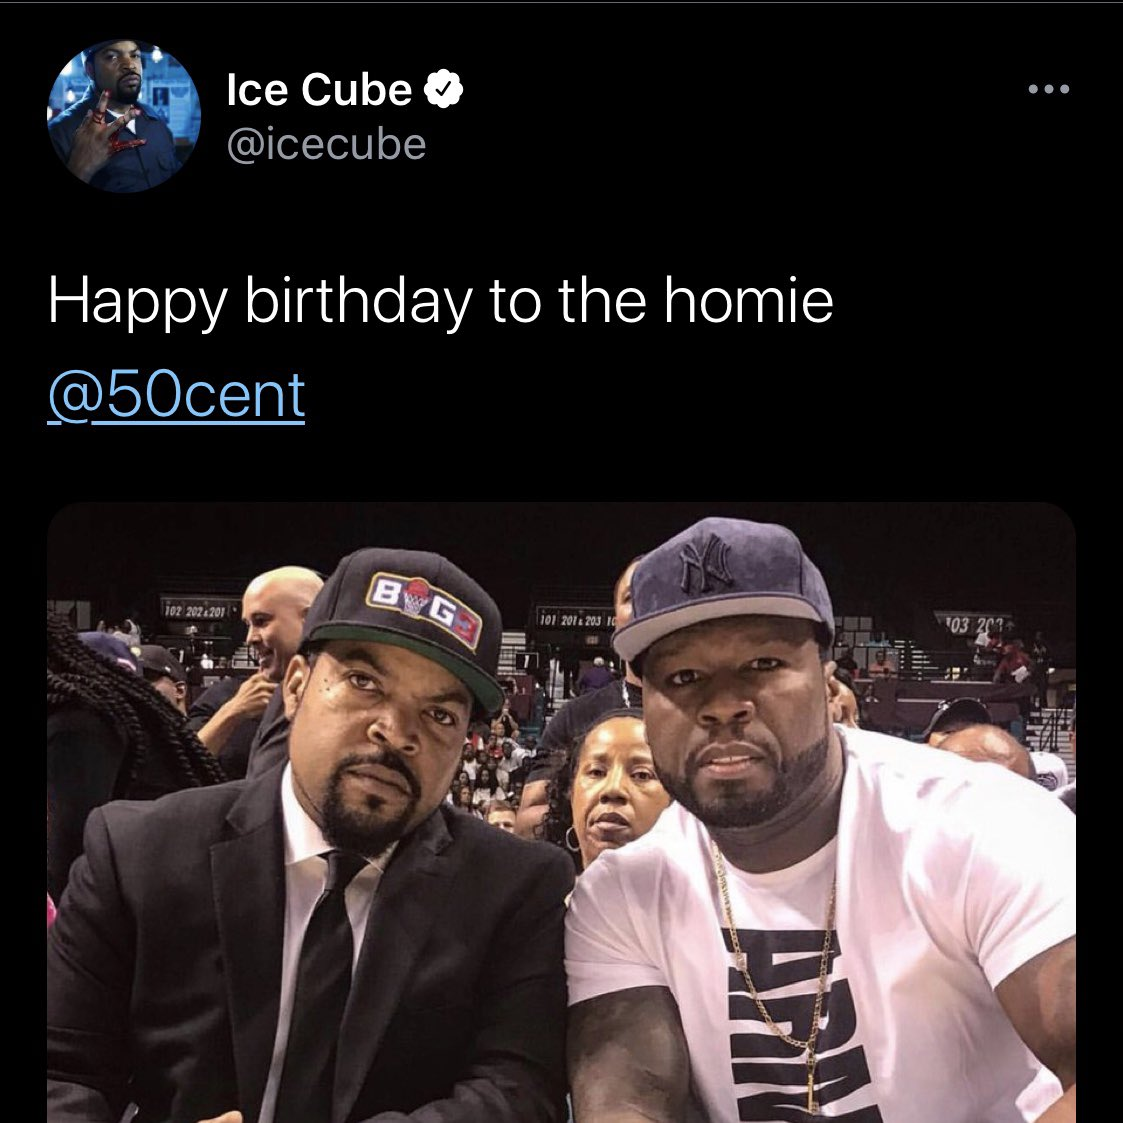 The Trump administration photoshopped a picture of 50 Cent and Ice Cube wearing Trump hats Here is the original and the fake